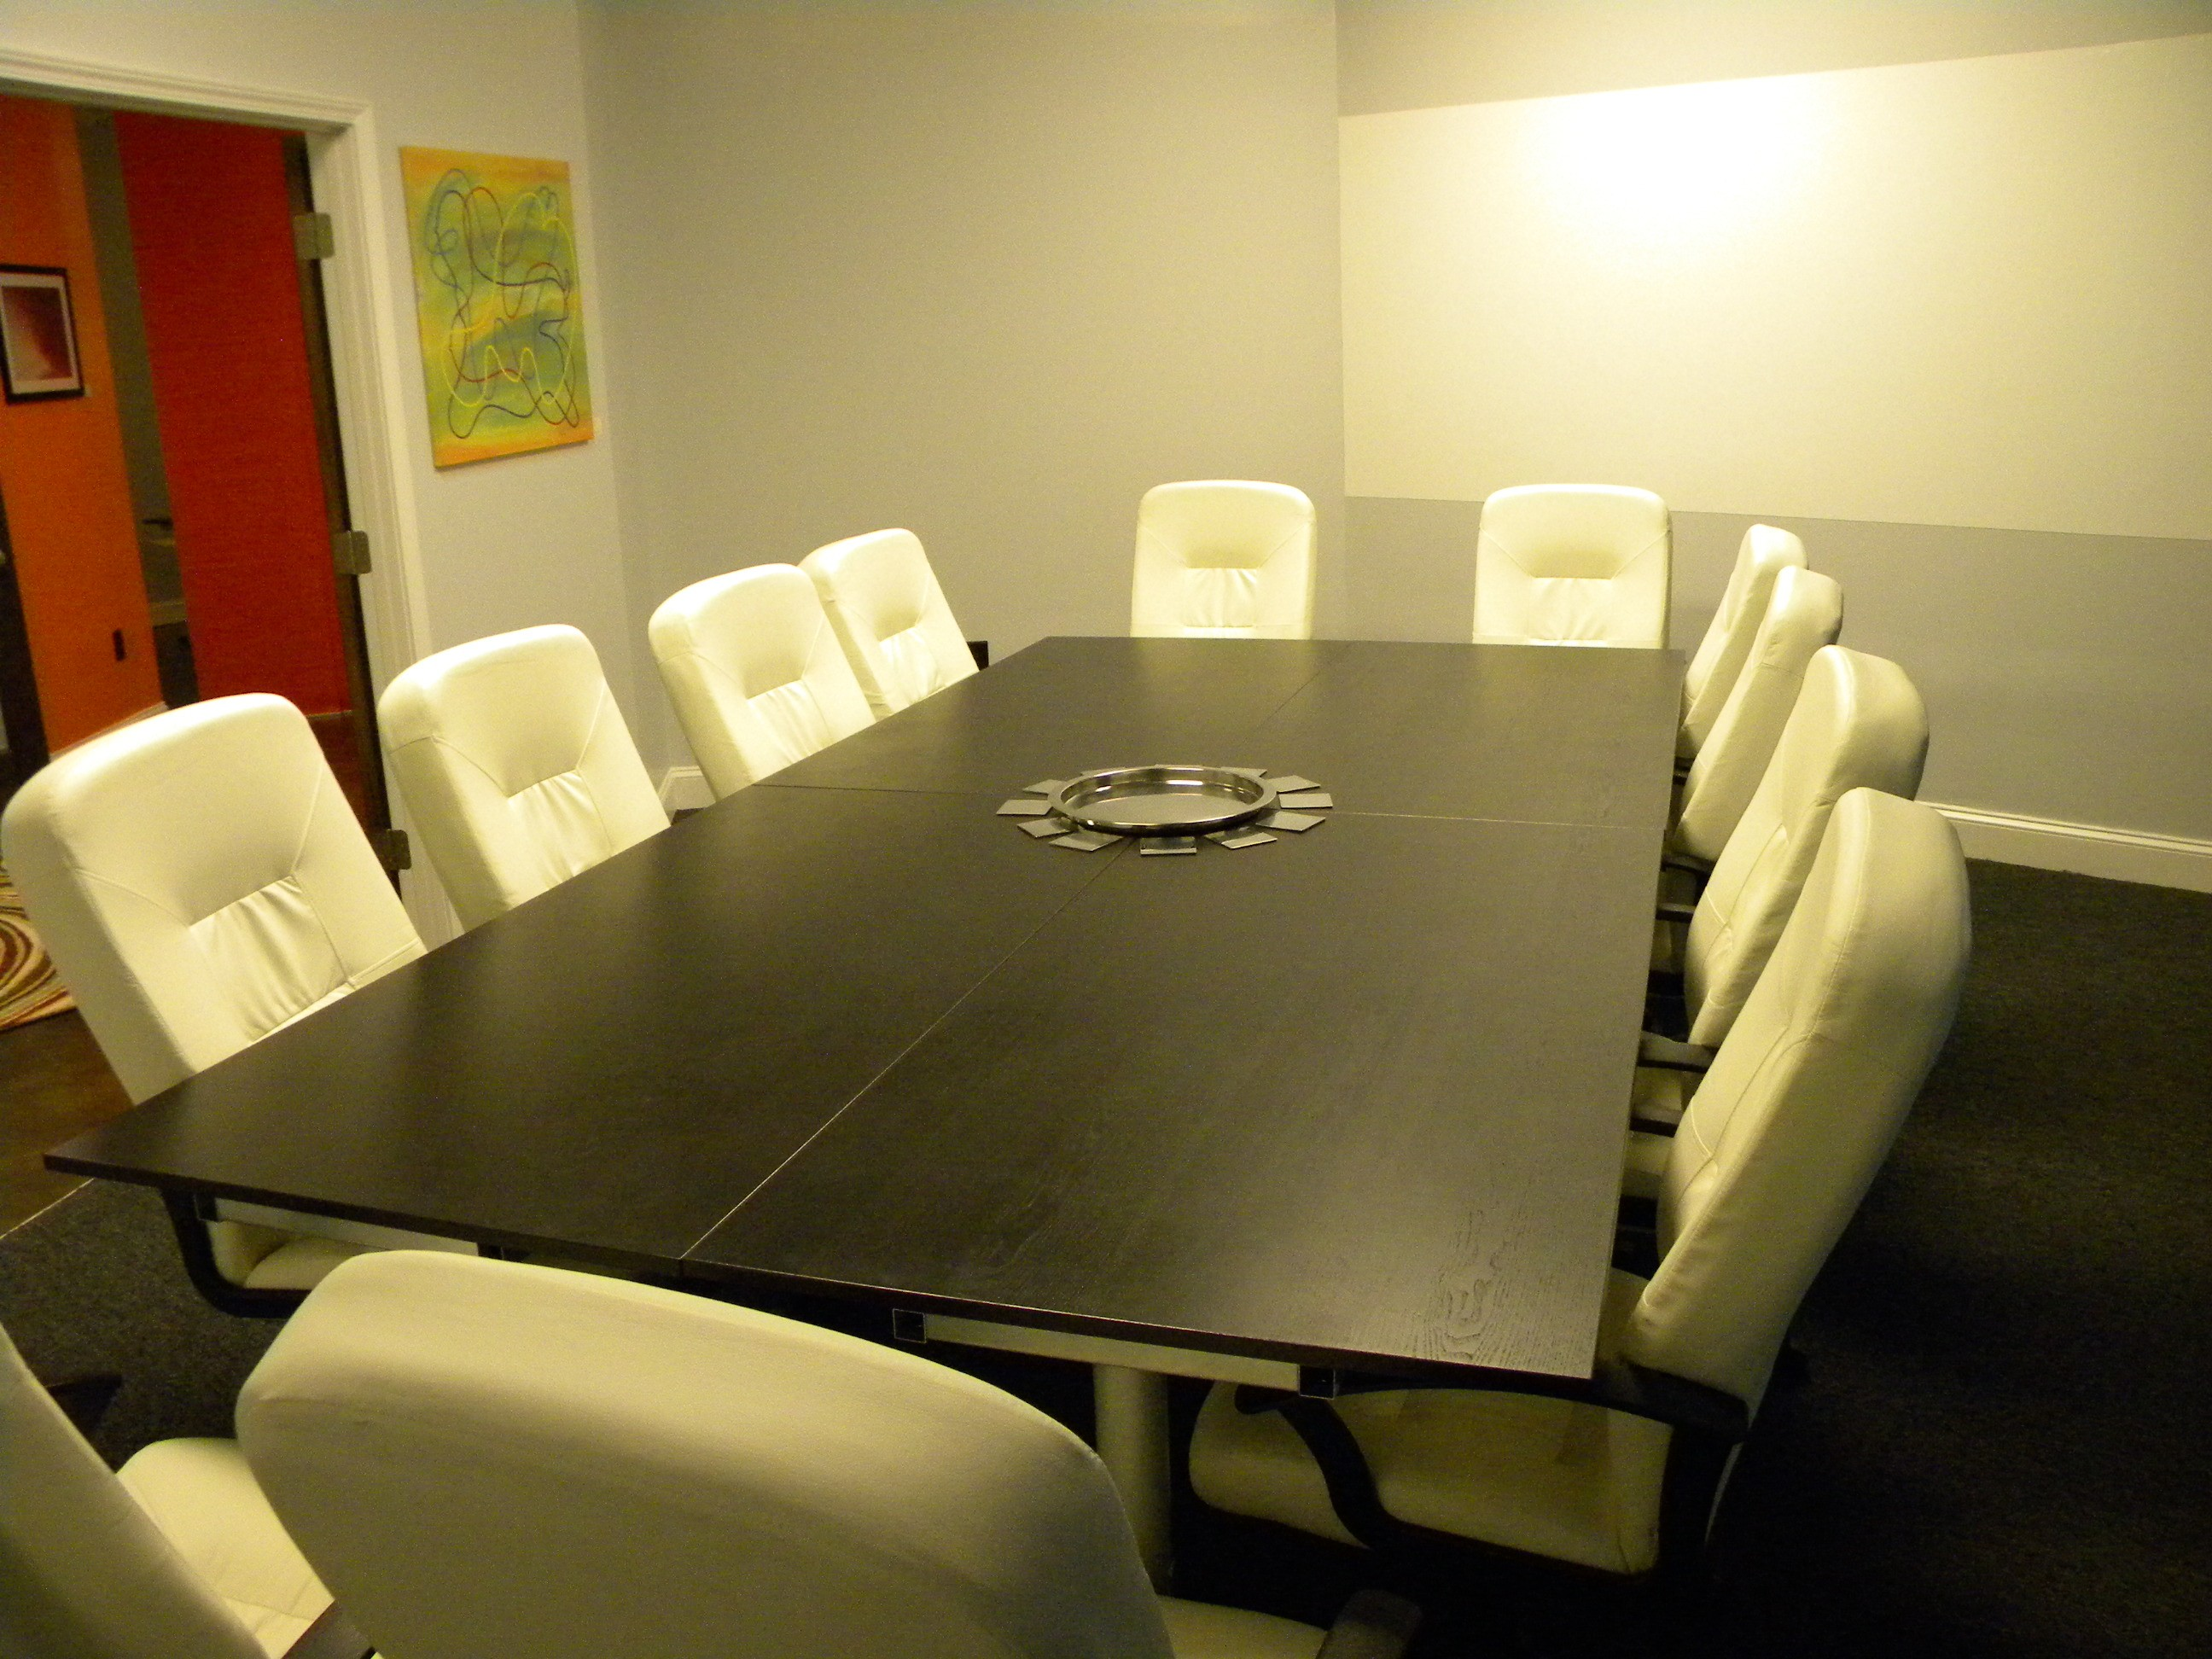 Office Desks KEKO FURNITURE - Conference table chairs with wheels